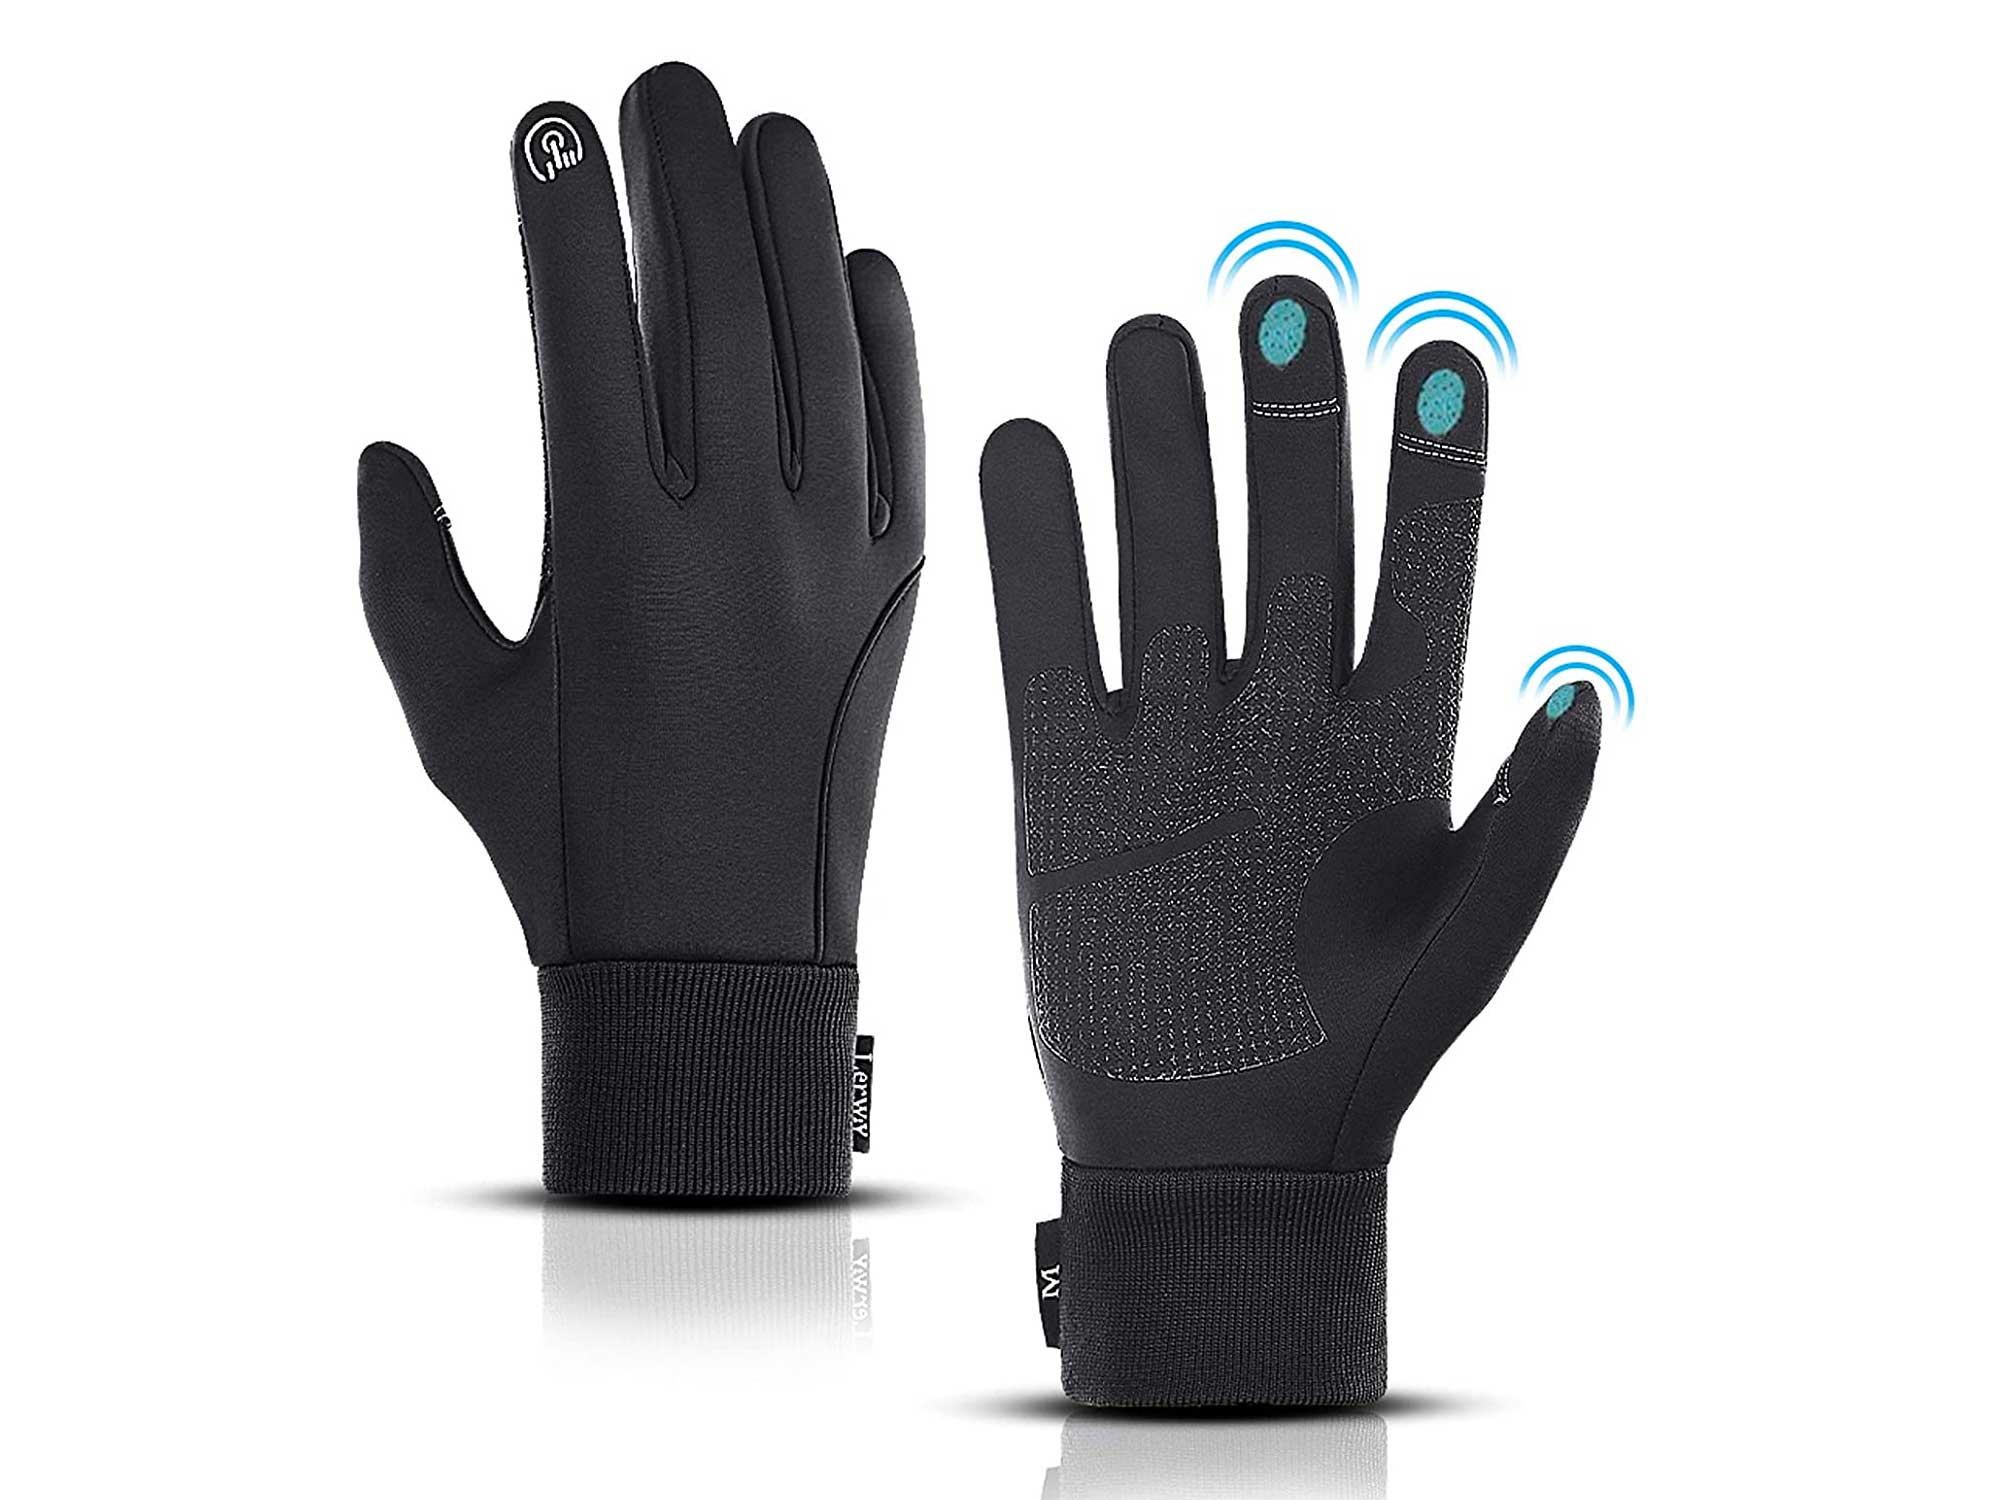 LERWAY Winter Warm Gloves, Touchscreen Gloves Windproof Water-Resistant Thermal Cotton Non-slip MTB Gloves